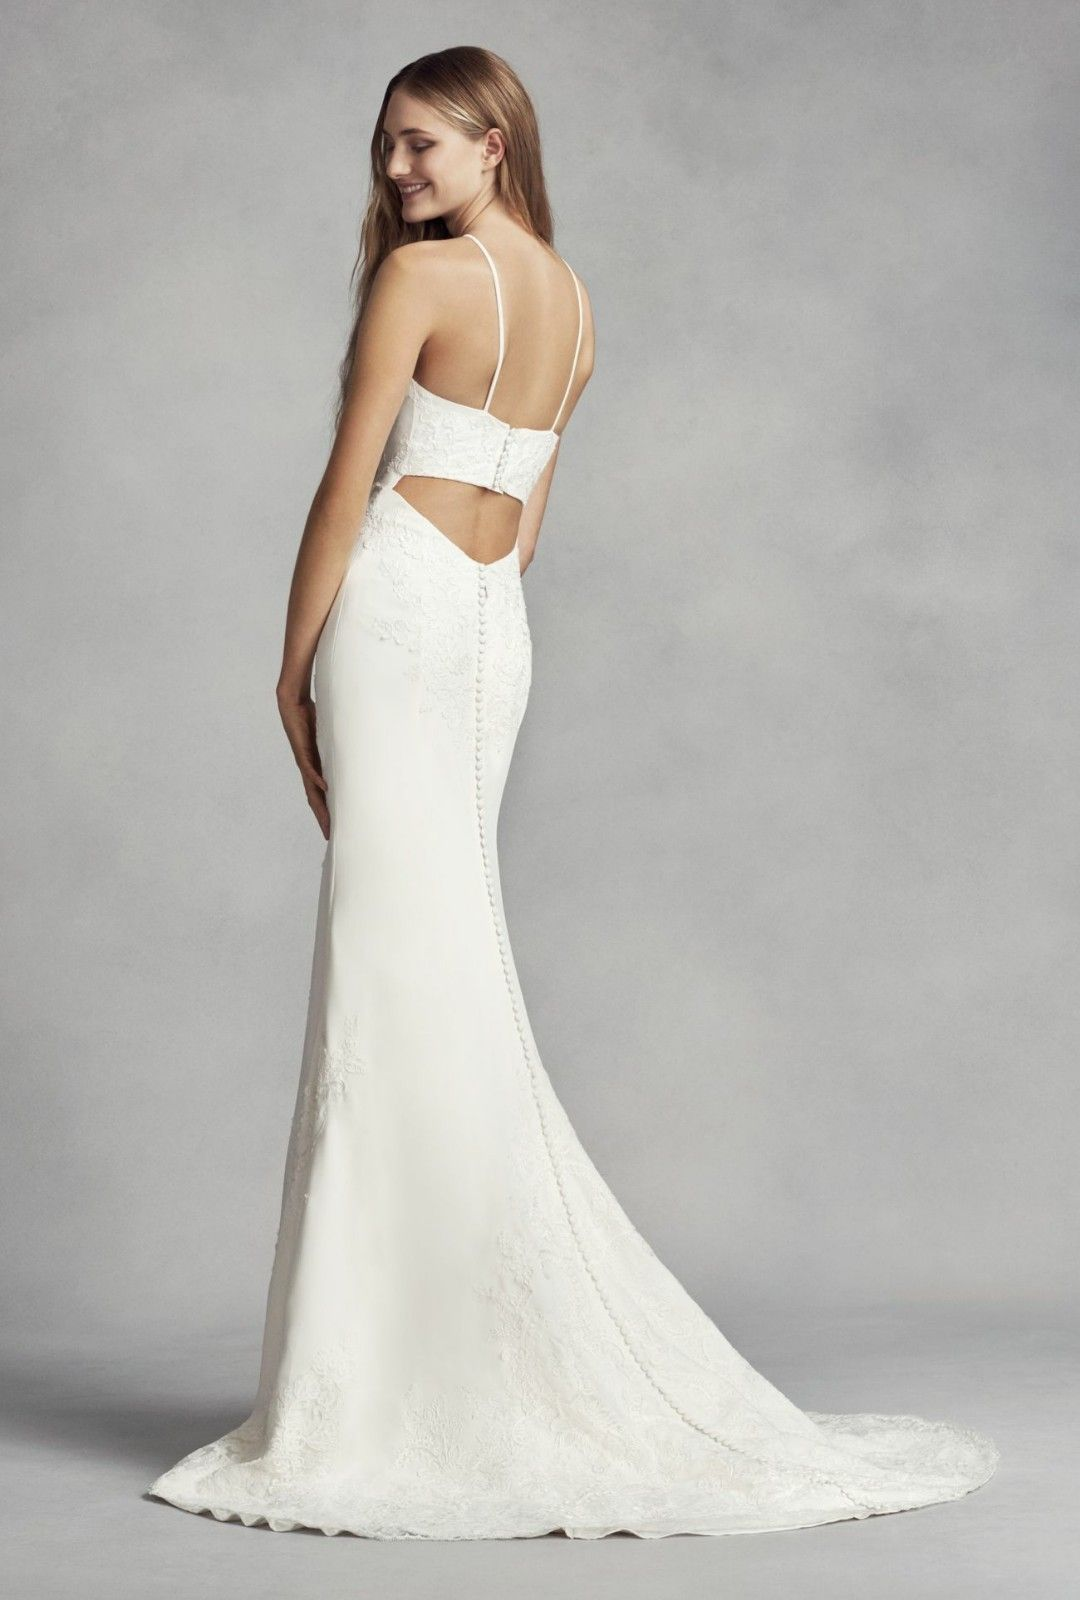 7dd77899b2e4 White by Vera Wang Collection for David's Bridal | Bridal Gown ...